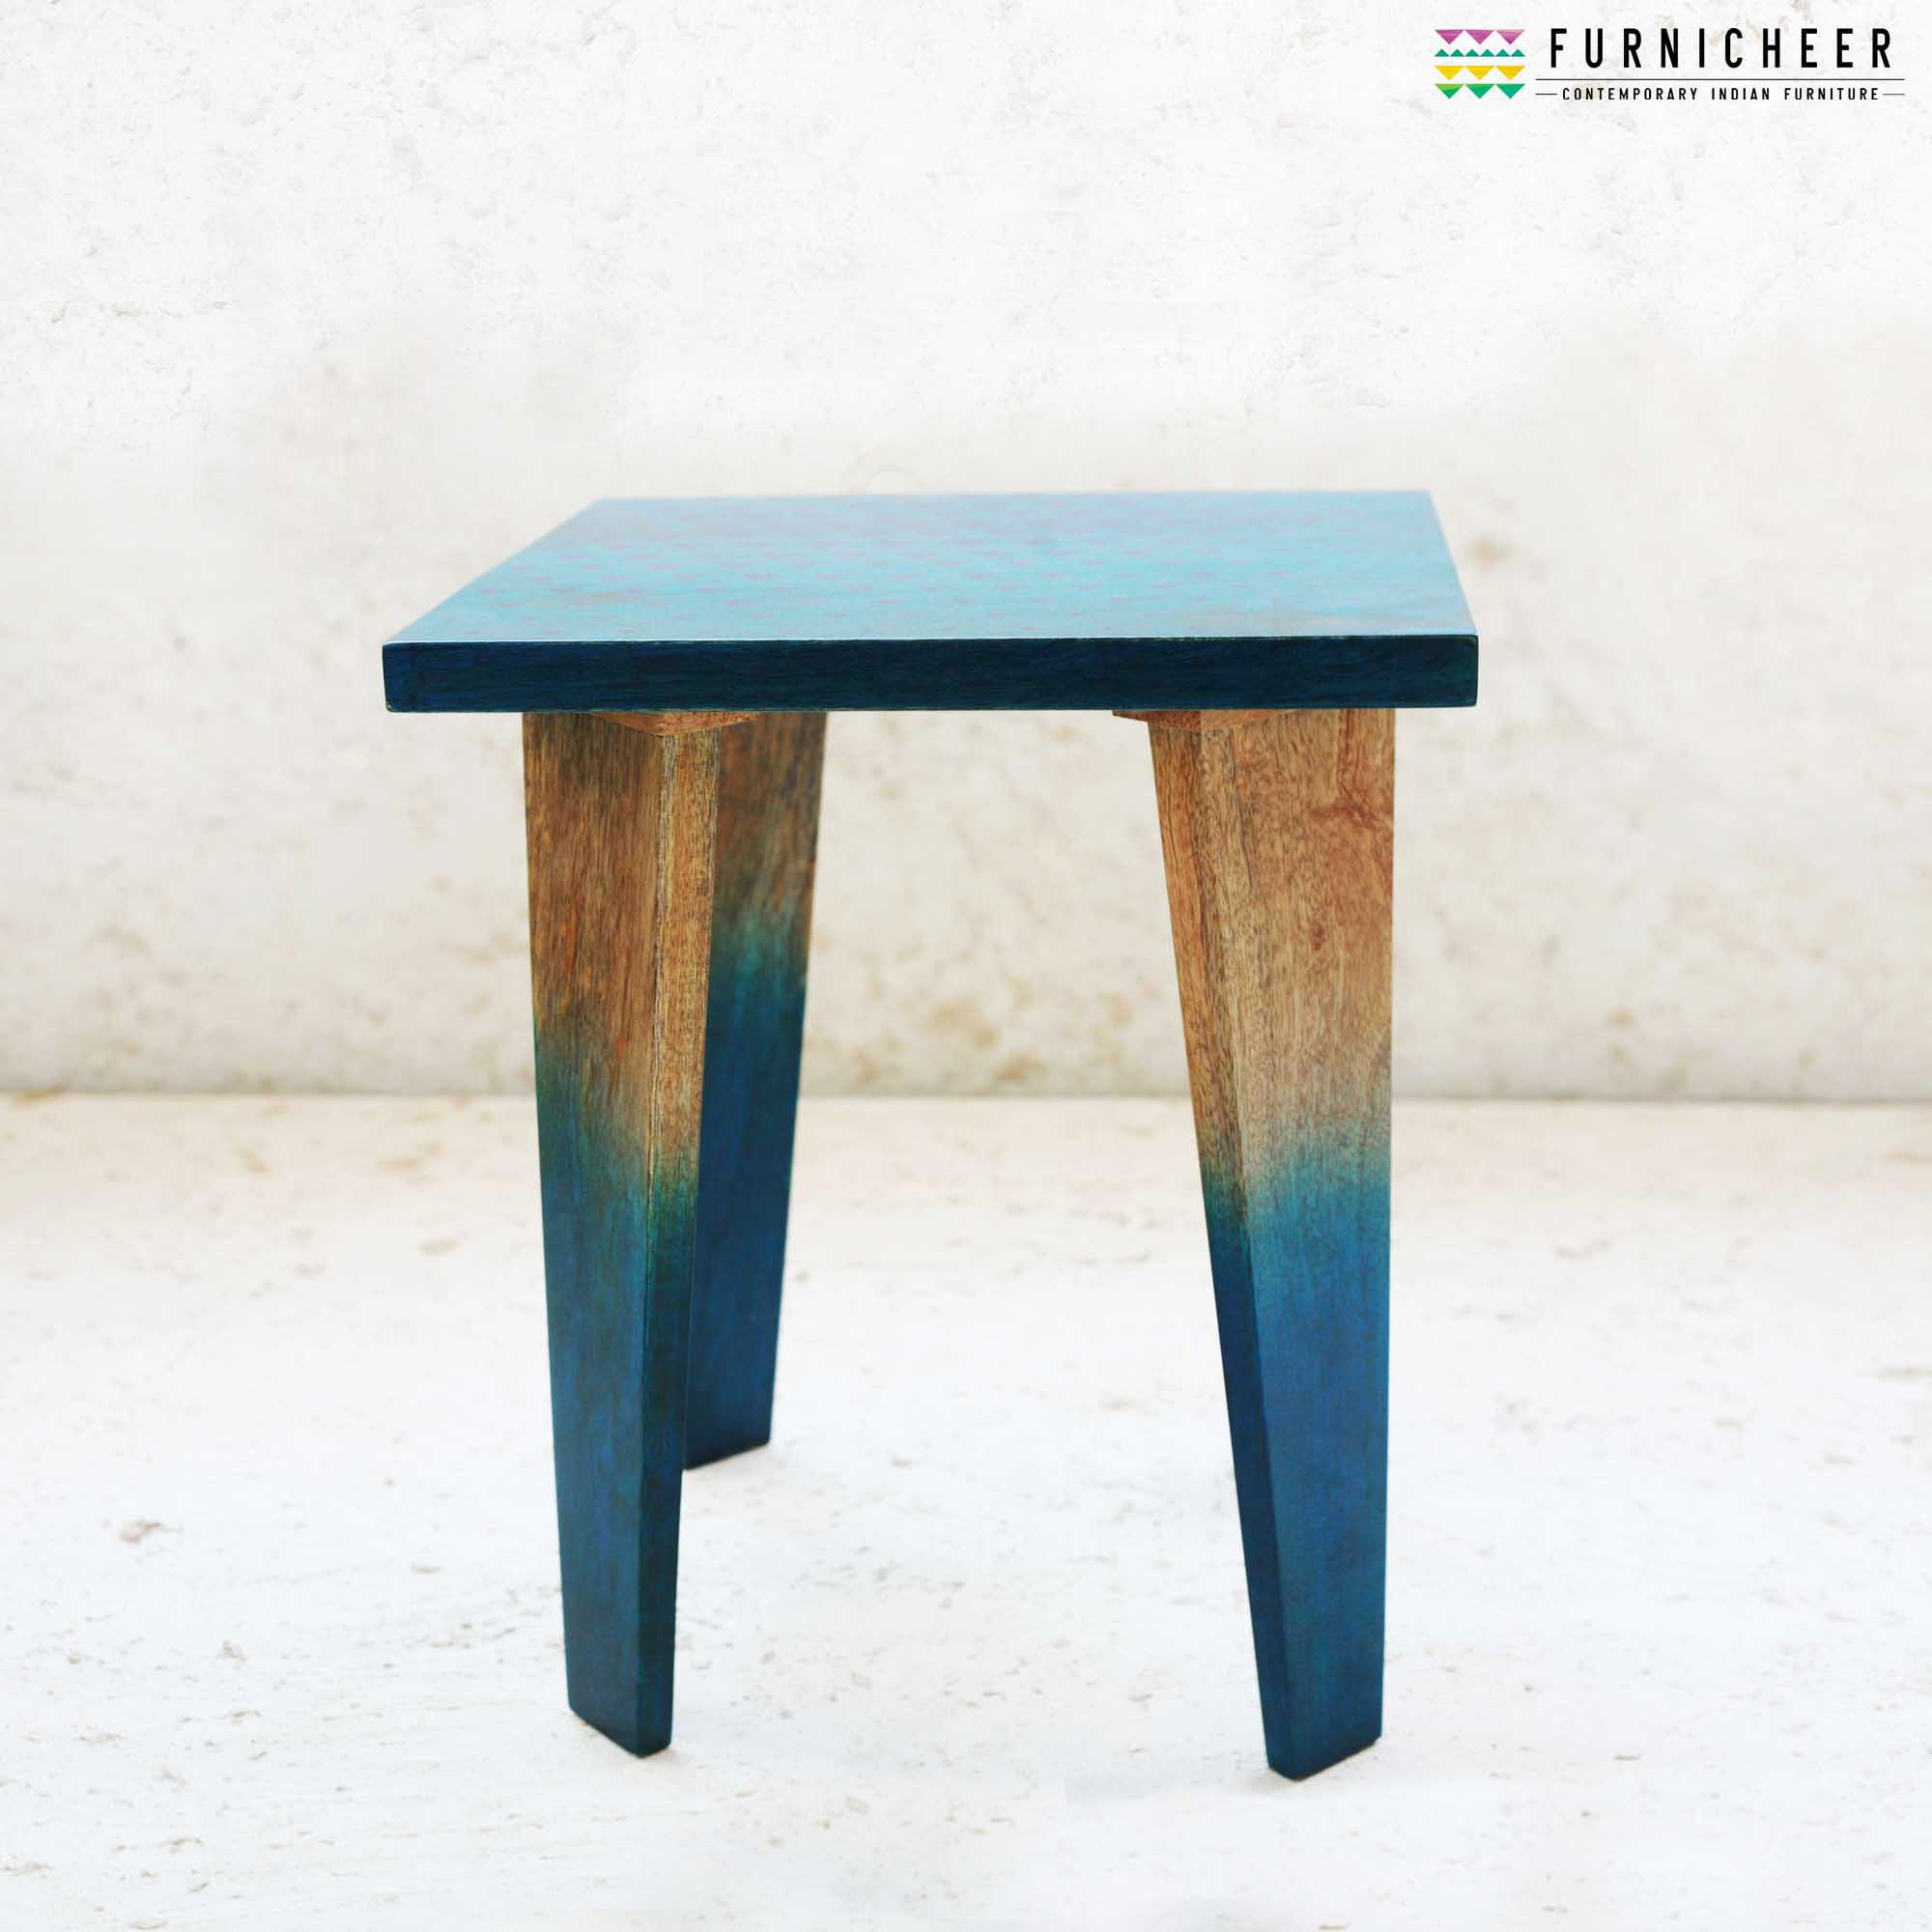 3.SIDE & END TABLE SKU TBSR0002